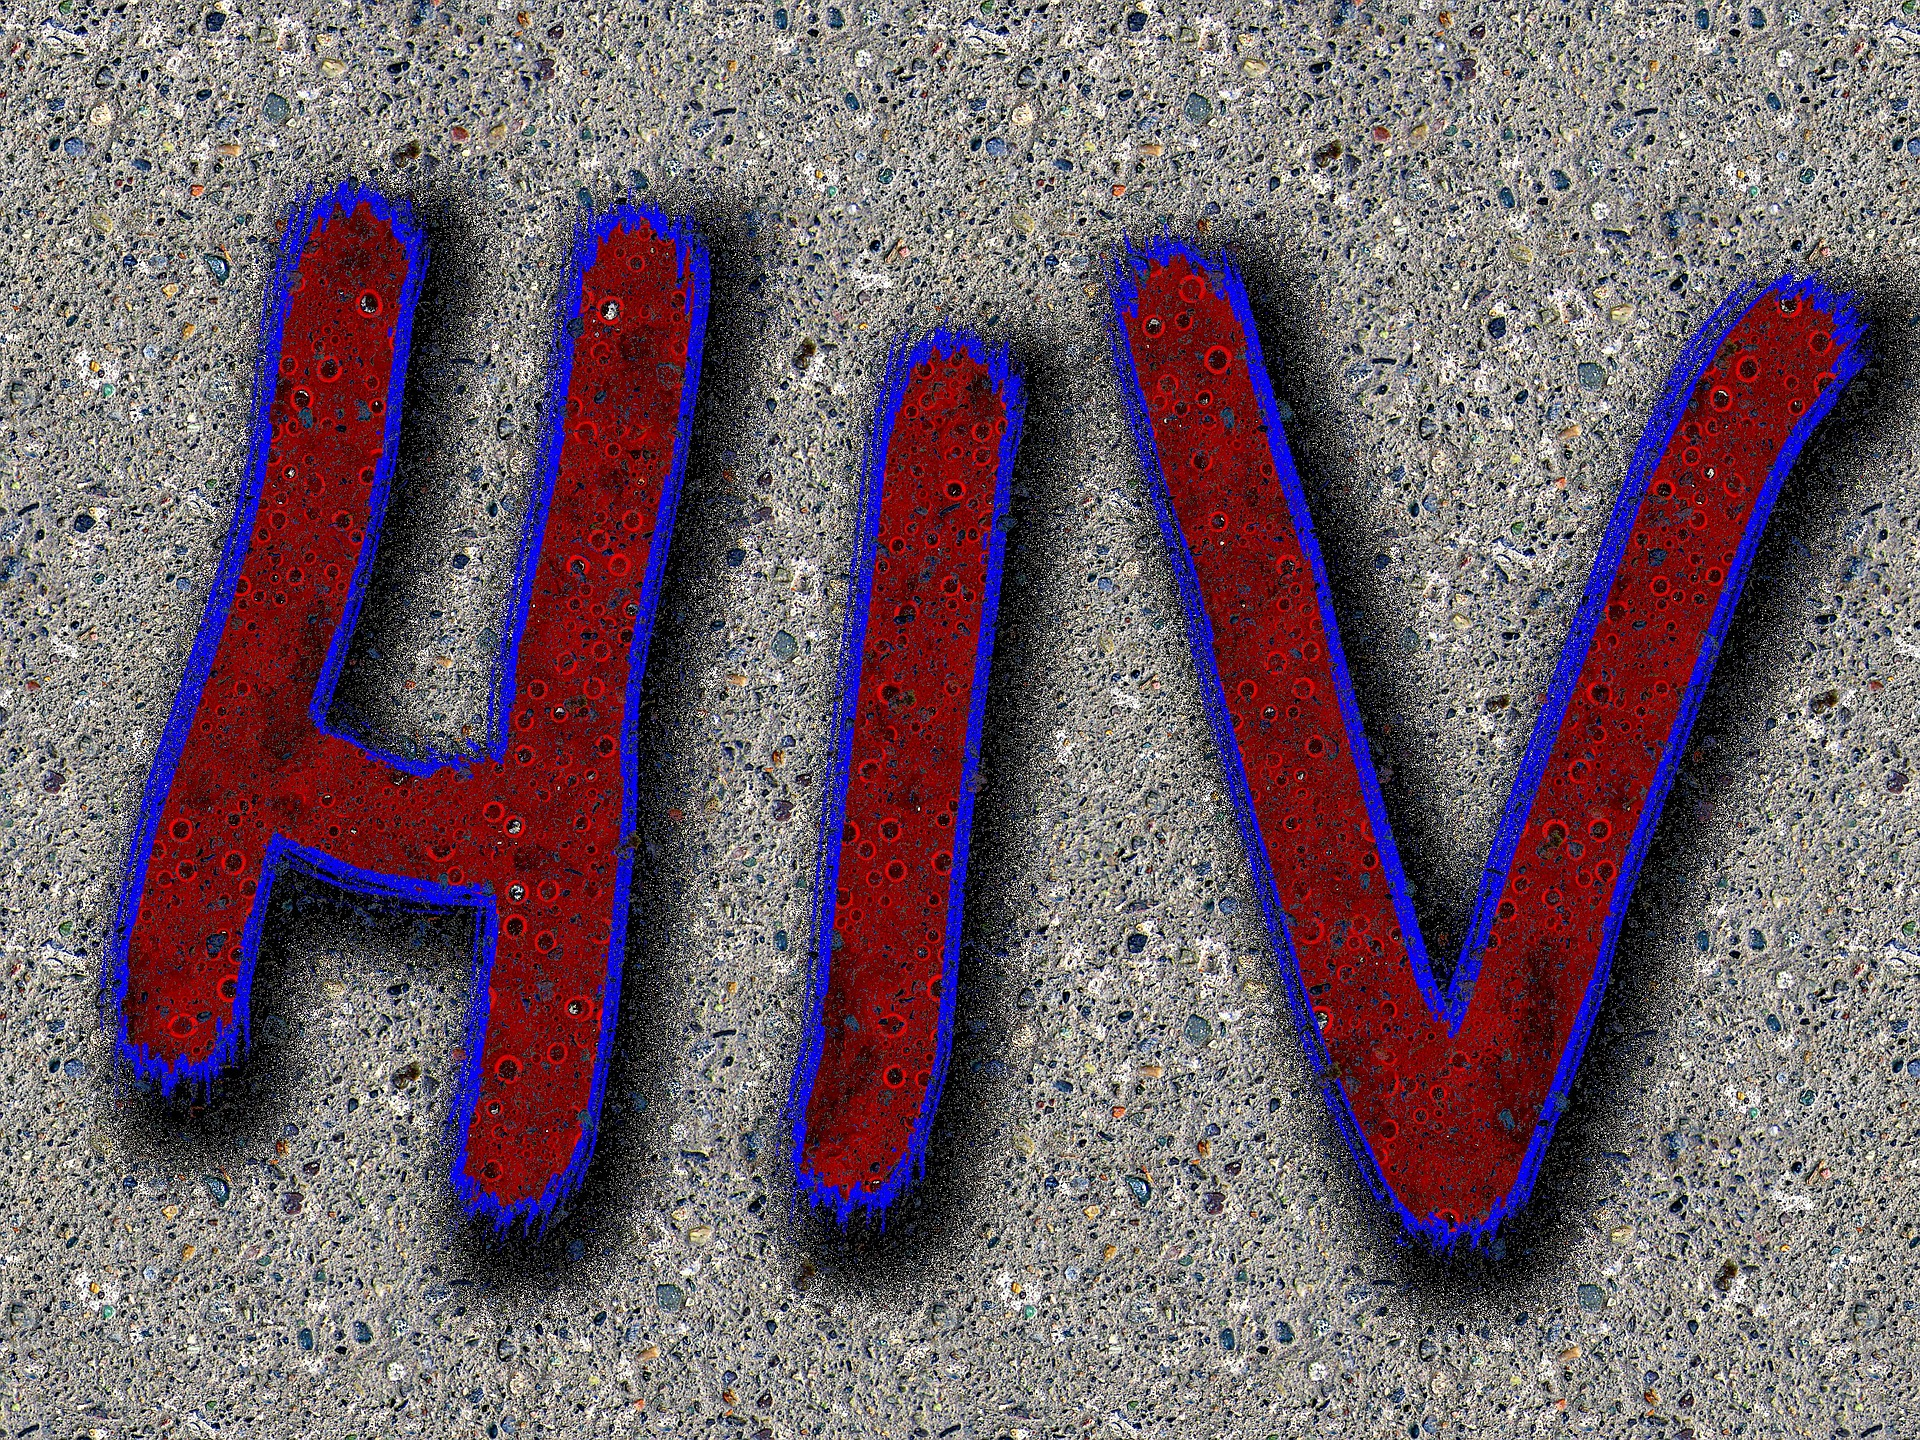 Learning about HIV